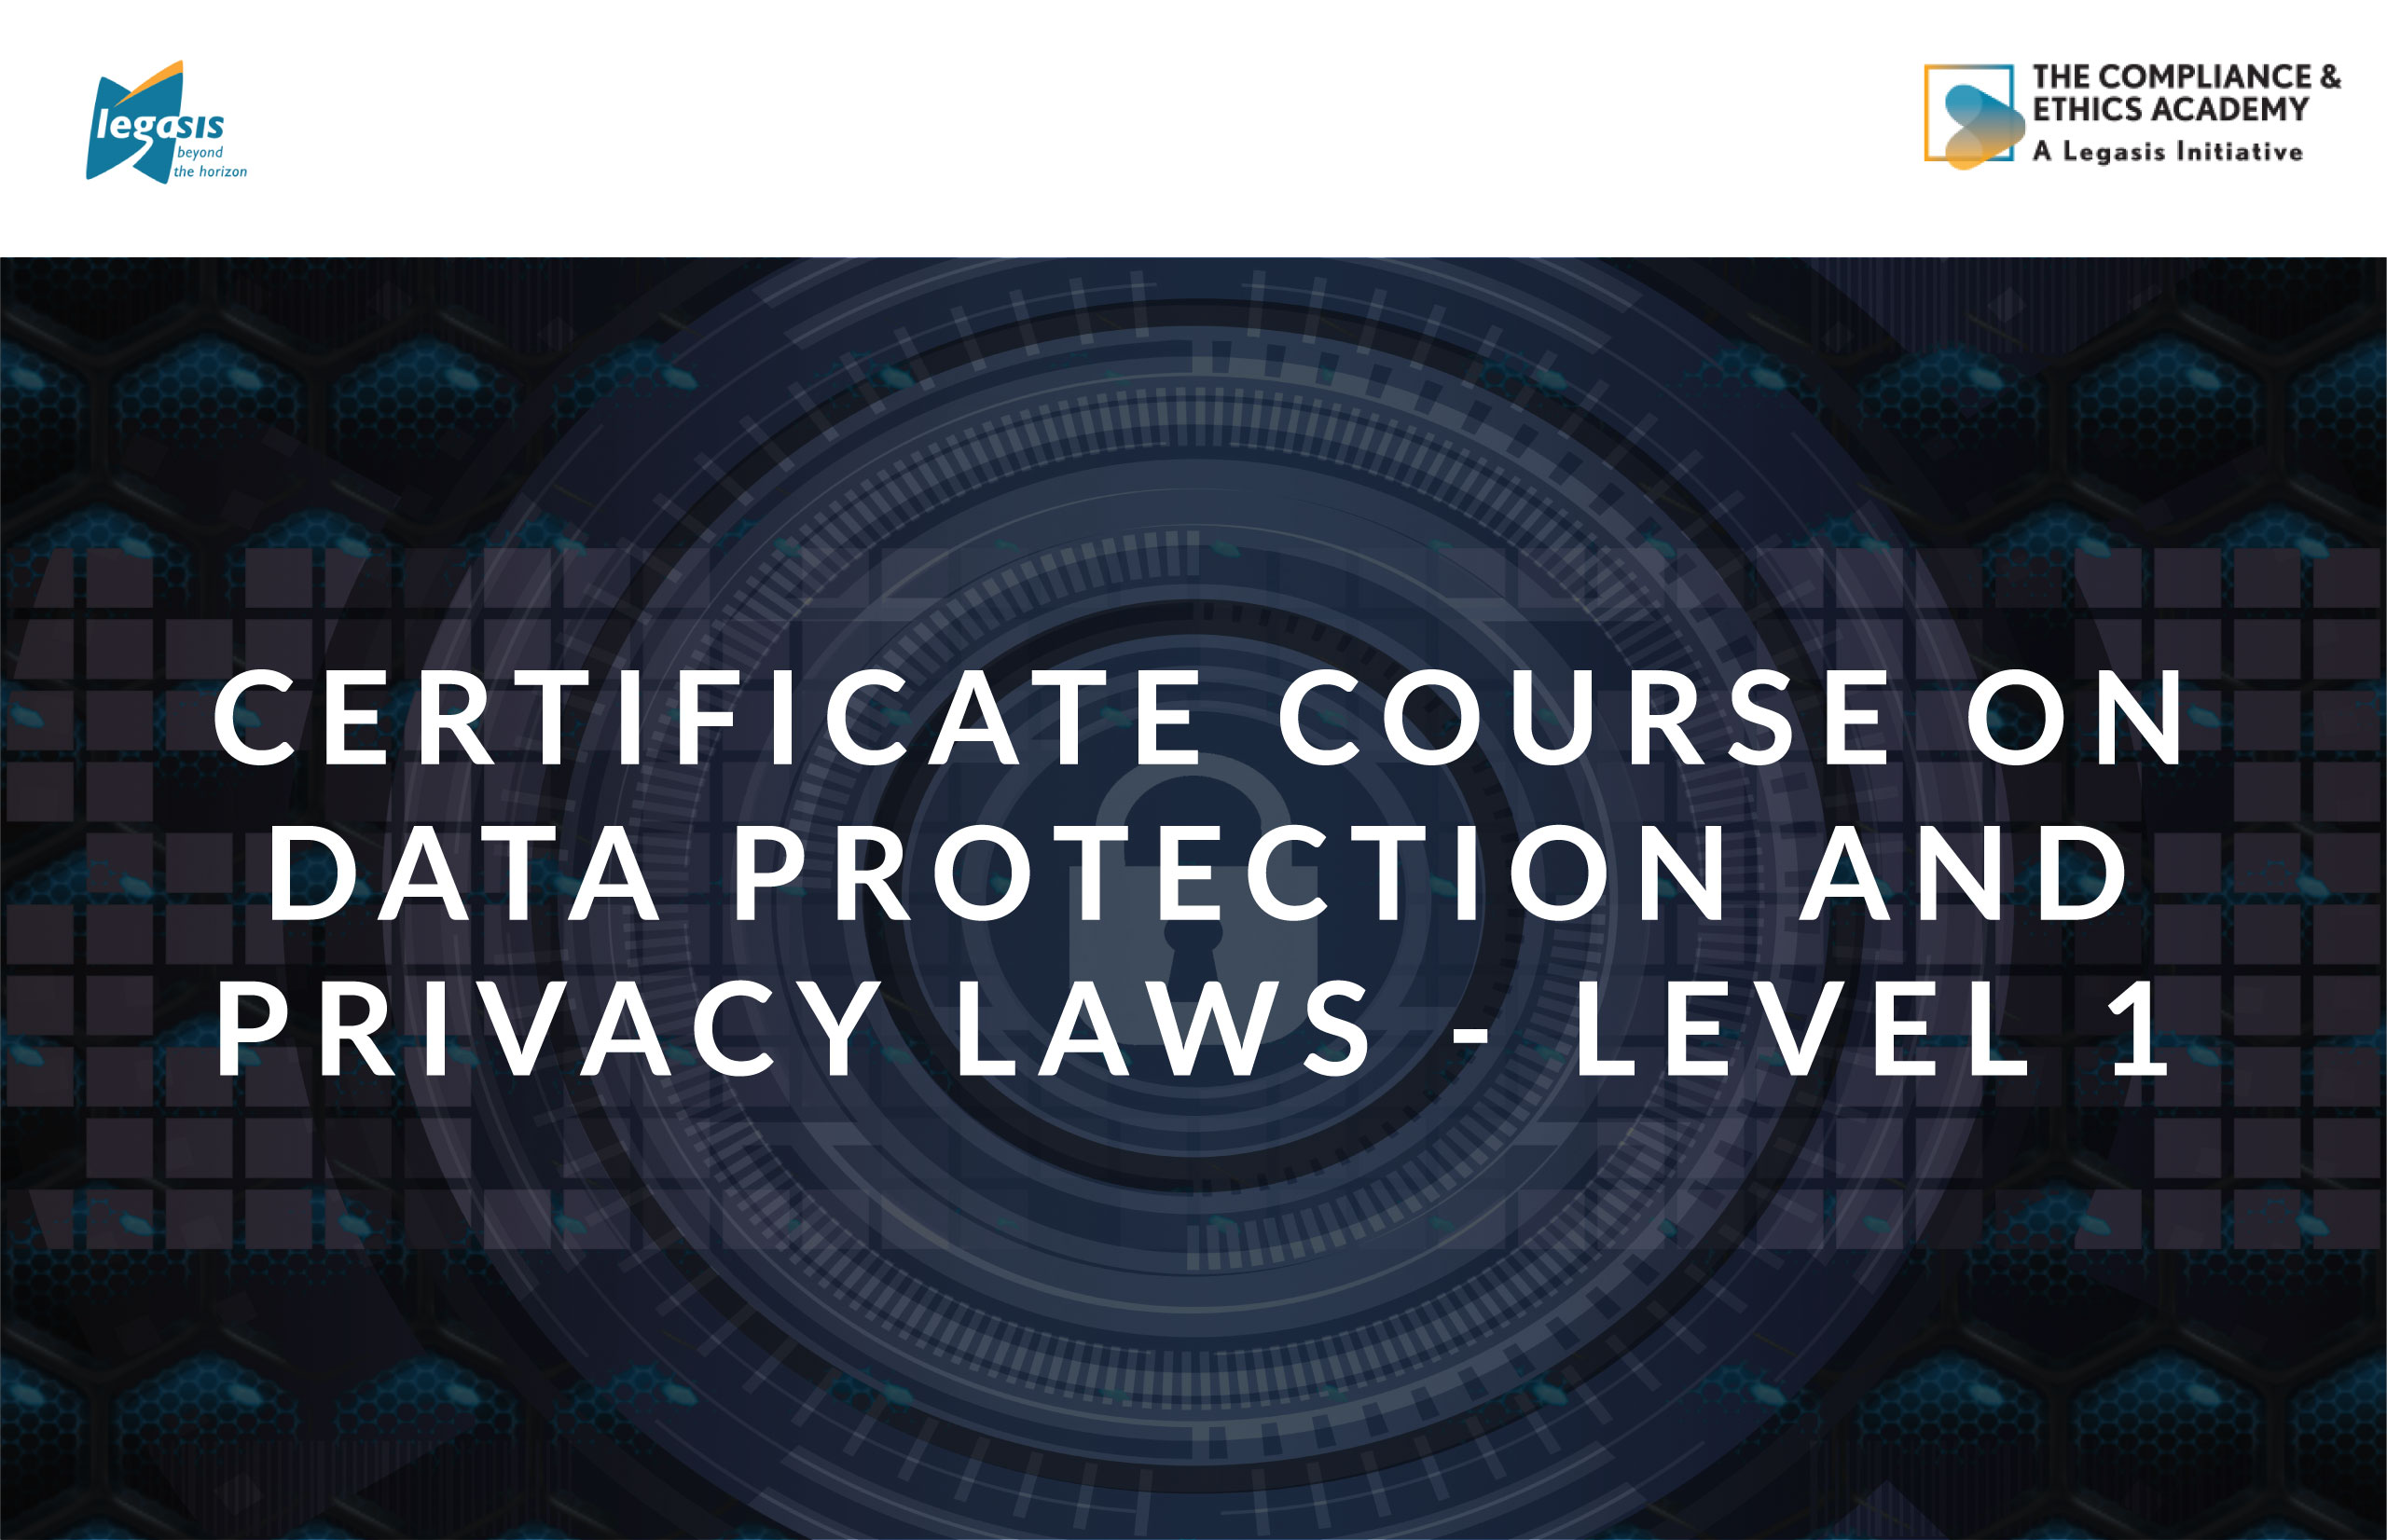 Certificate Course On Data Protection And Privacy Laws - Level 1